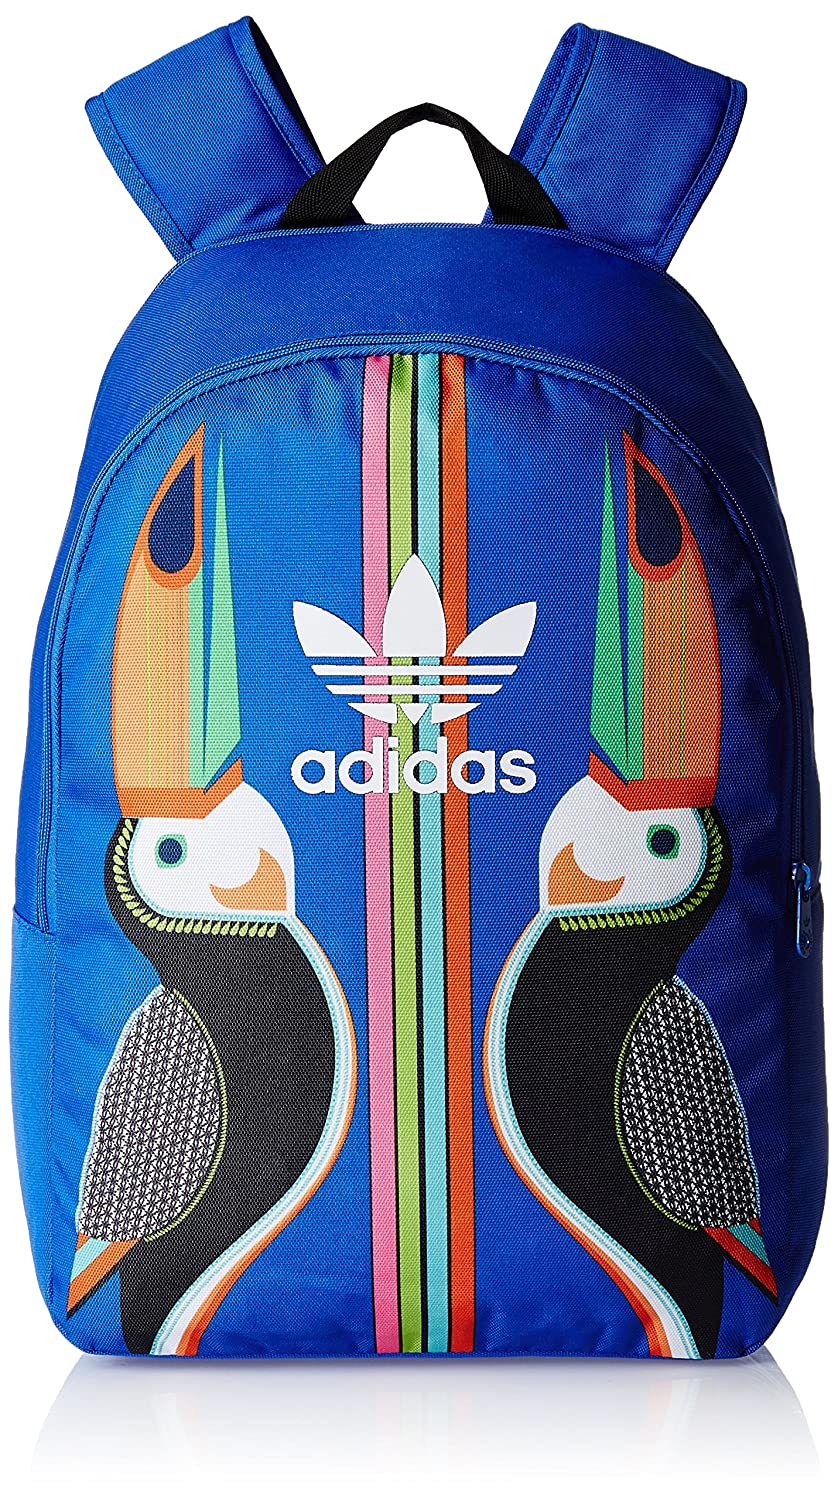 1d8369289ba4 adidas Originals Farm Tukana Back Pack in Blue - One Size  adidas Originals   Amazon.co.uk  Sports   Outdoors